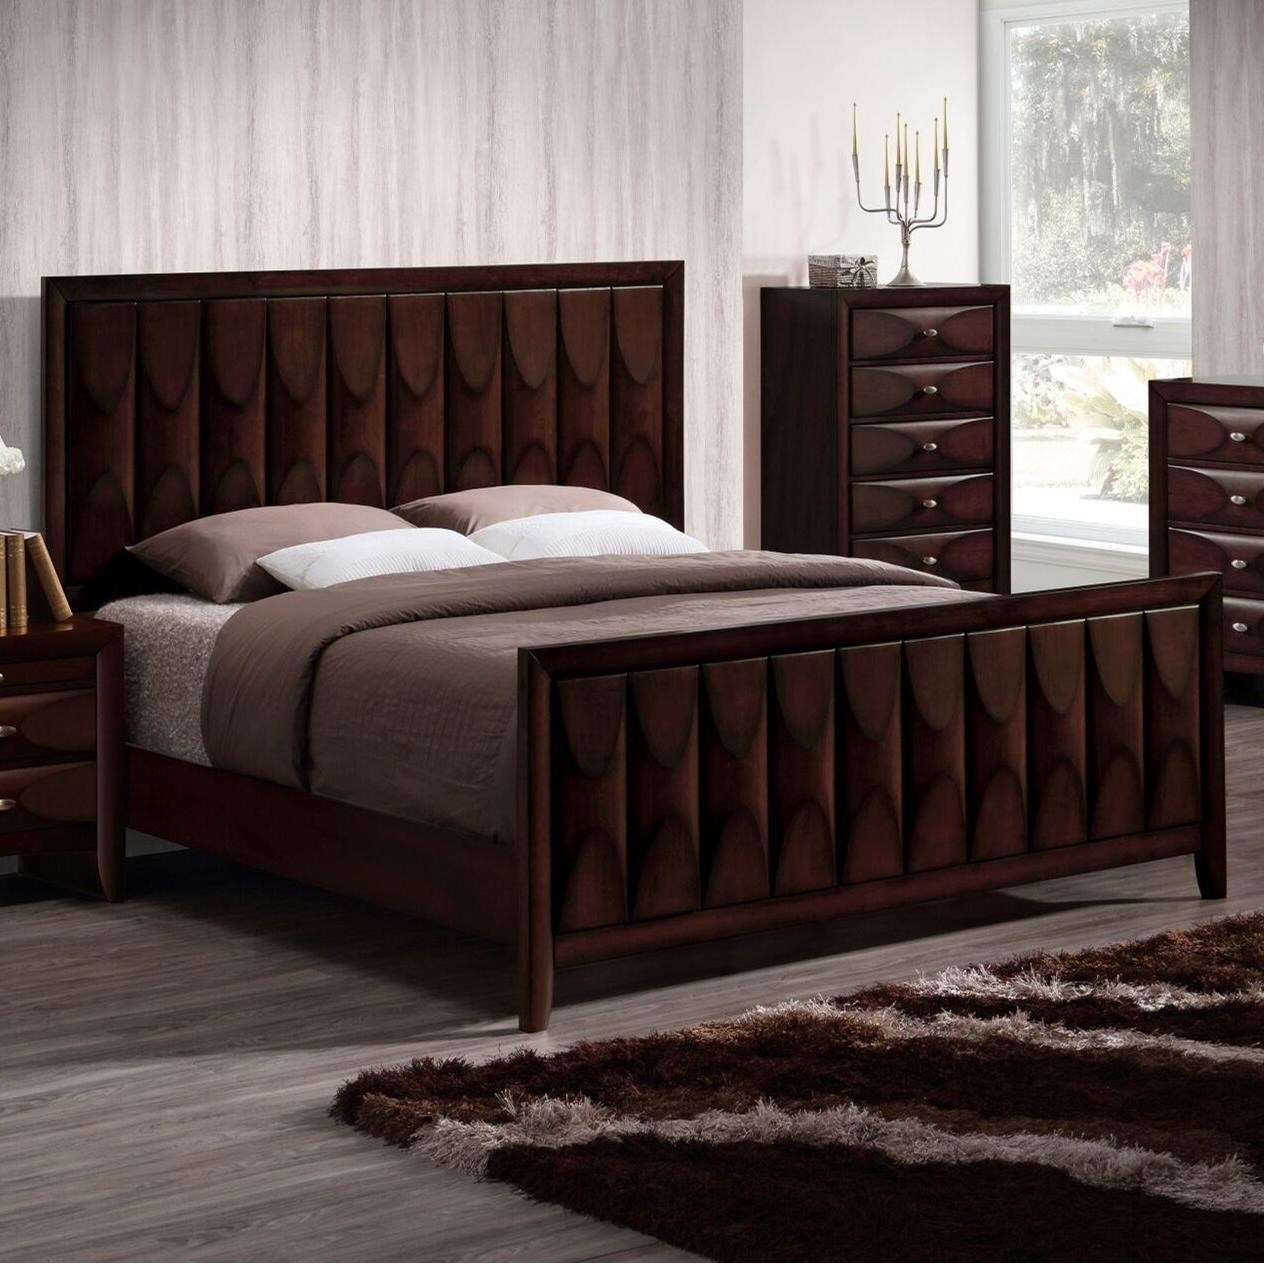 Lifestyle Banfield Queen Bed - Item Number: C6181B-Q48-XXXX+BXN